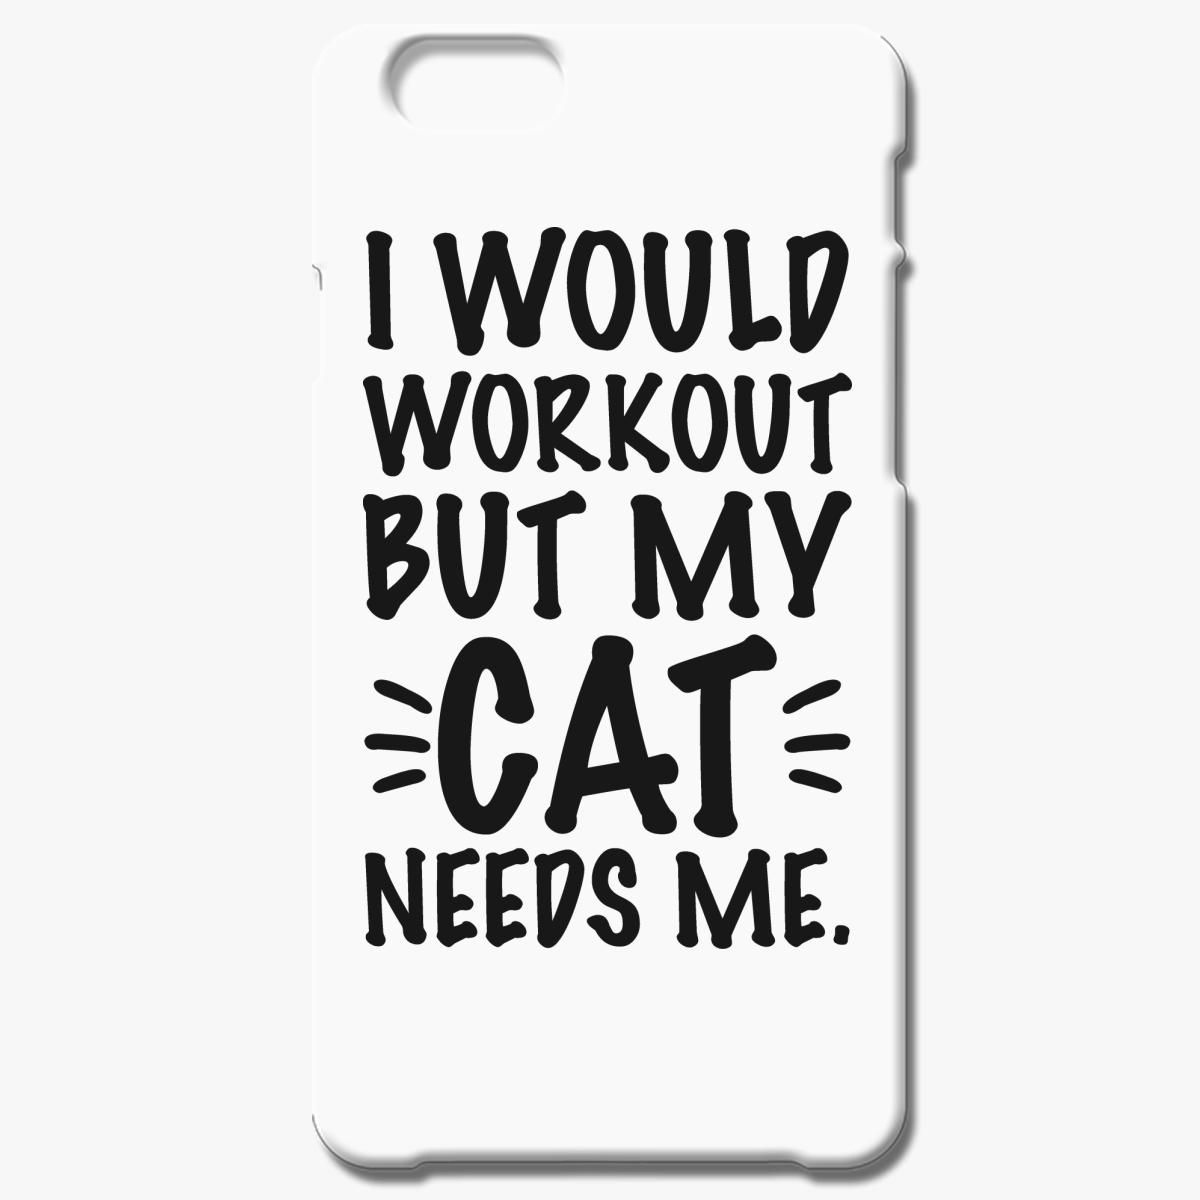 I Would Workout But My Cat Needs Me Iphone 6 6s Plus Case